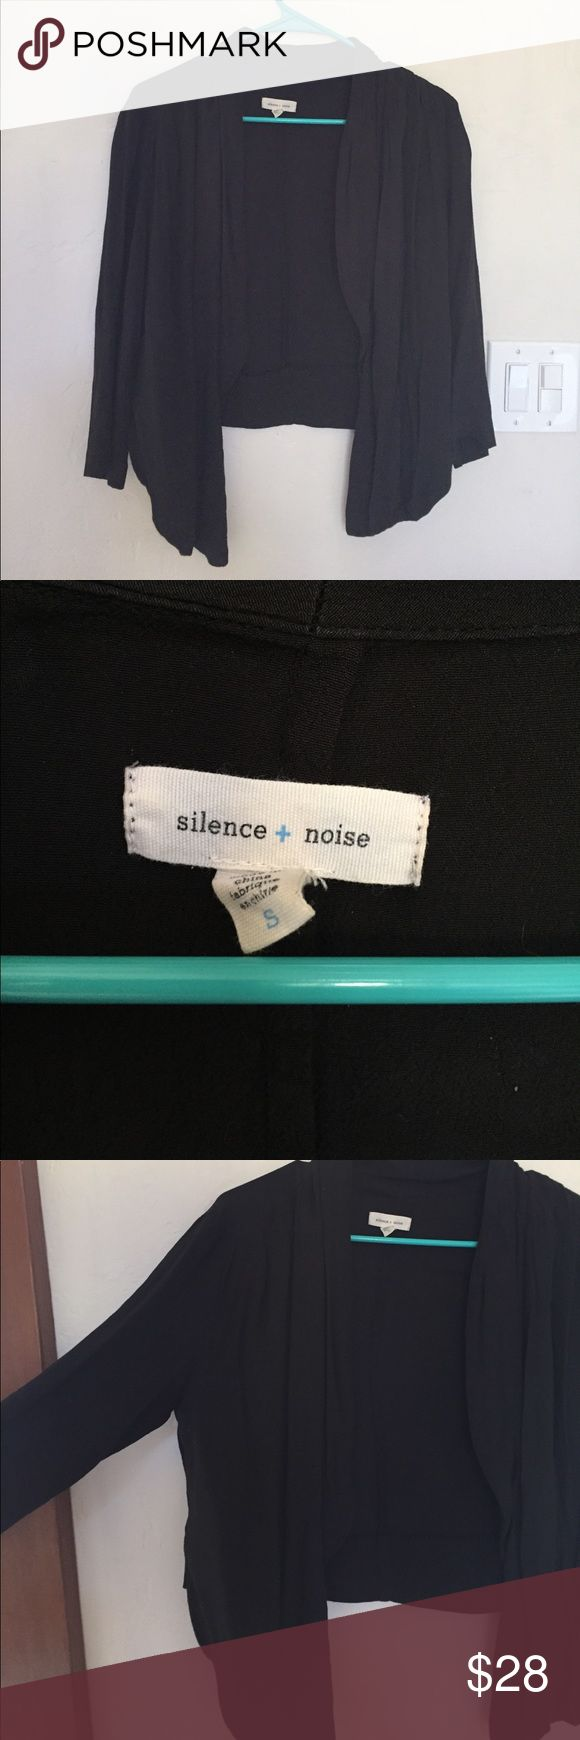 Silence + noise cropped black cover up Simple cropped black cover up. Perfect for work or over dresses Urban Outfitters Jackets & Coats